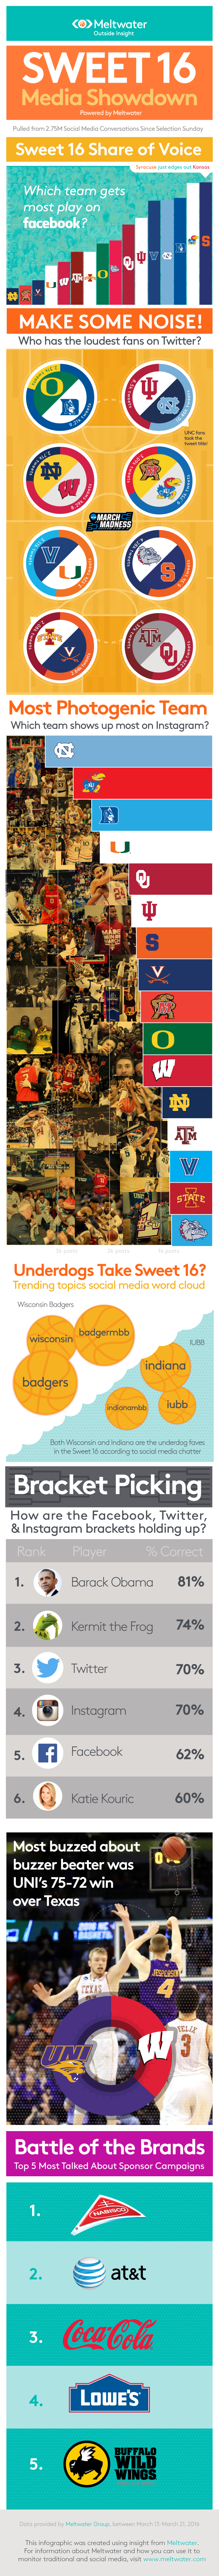 sweet-16-infographic (1).png